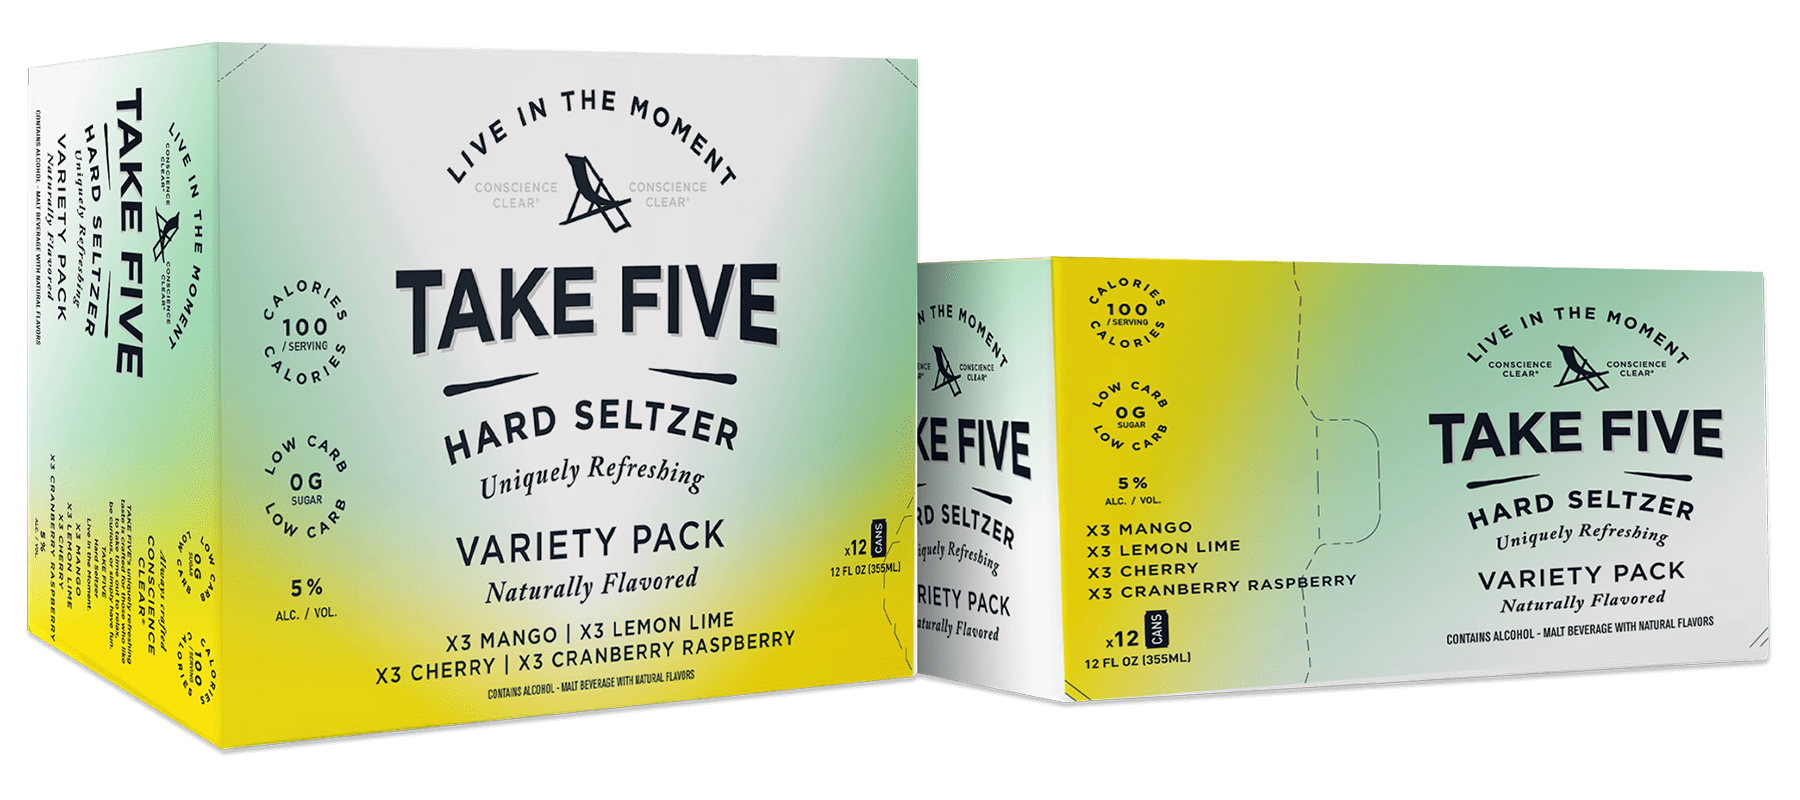 TAKE FIVE Variety Pack